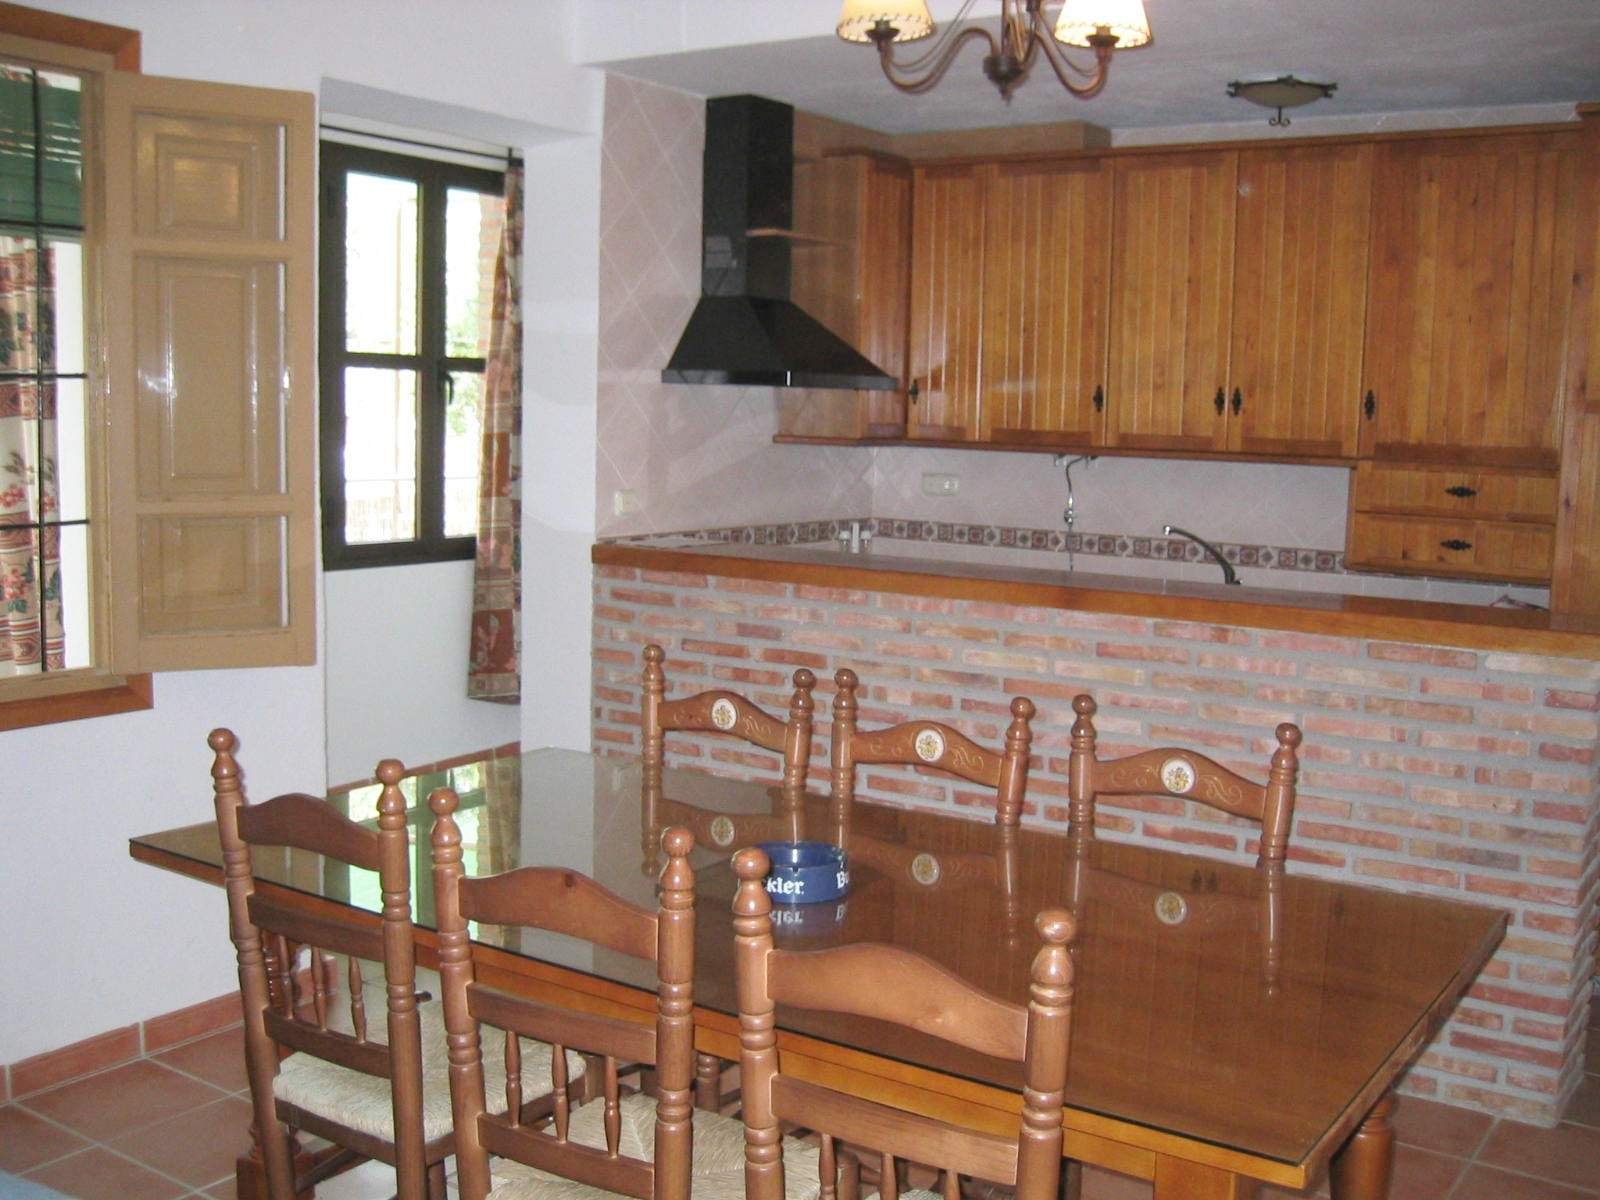 Decoraciones rurales - Cocinas para casas rurales ...